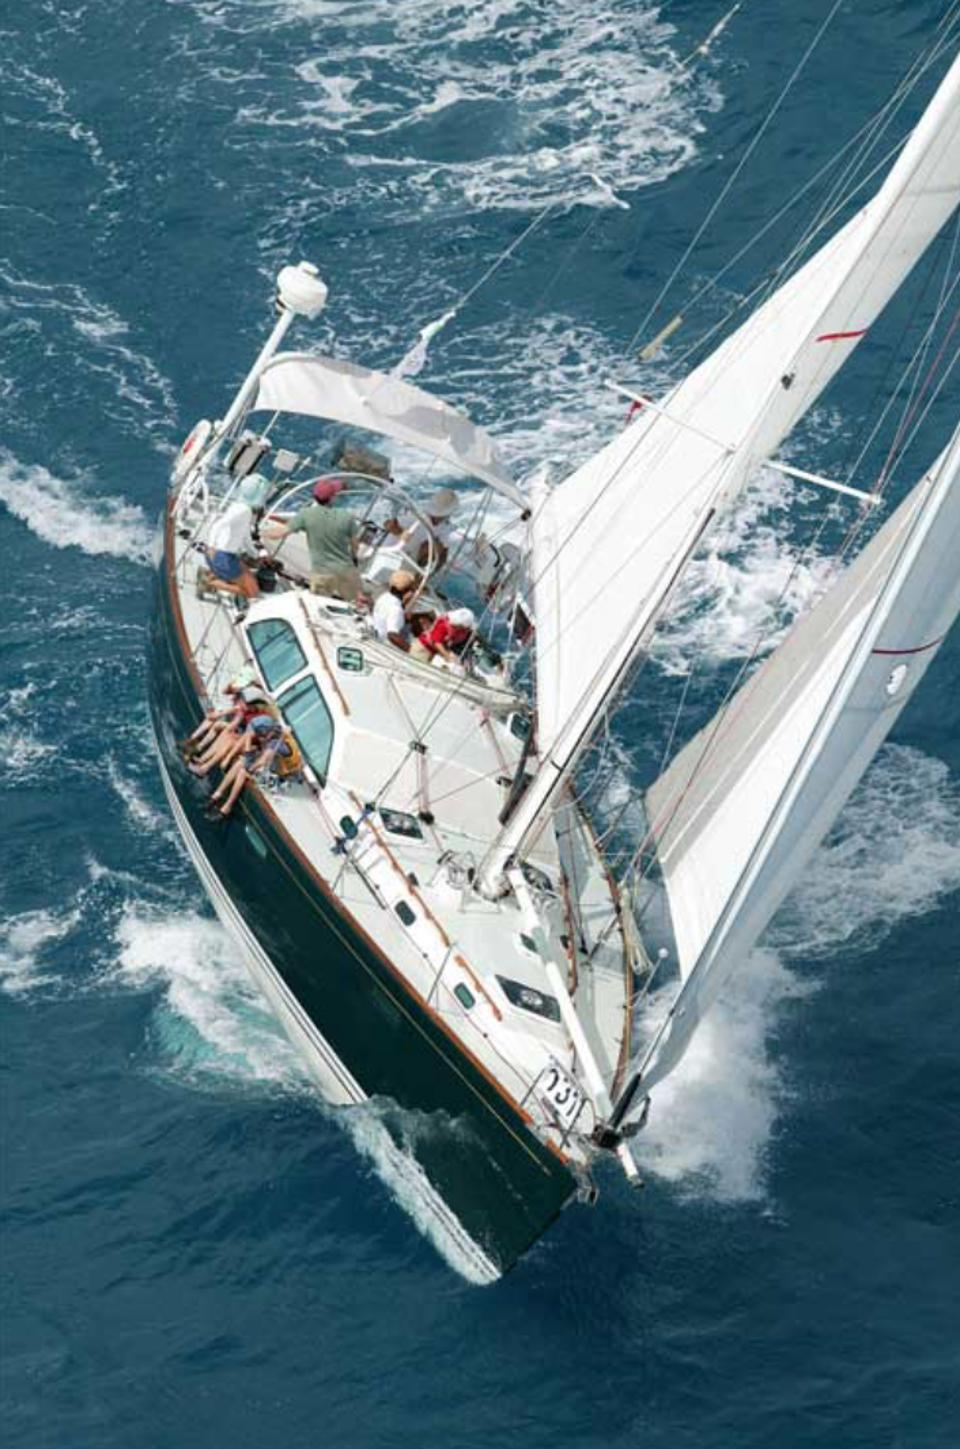 BBW is also known for their ability to build his-perfomance sailing yachts as well.